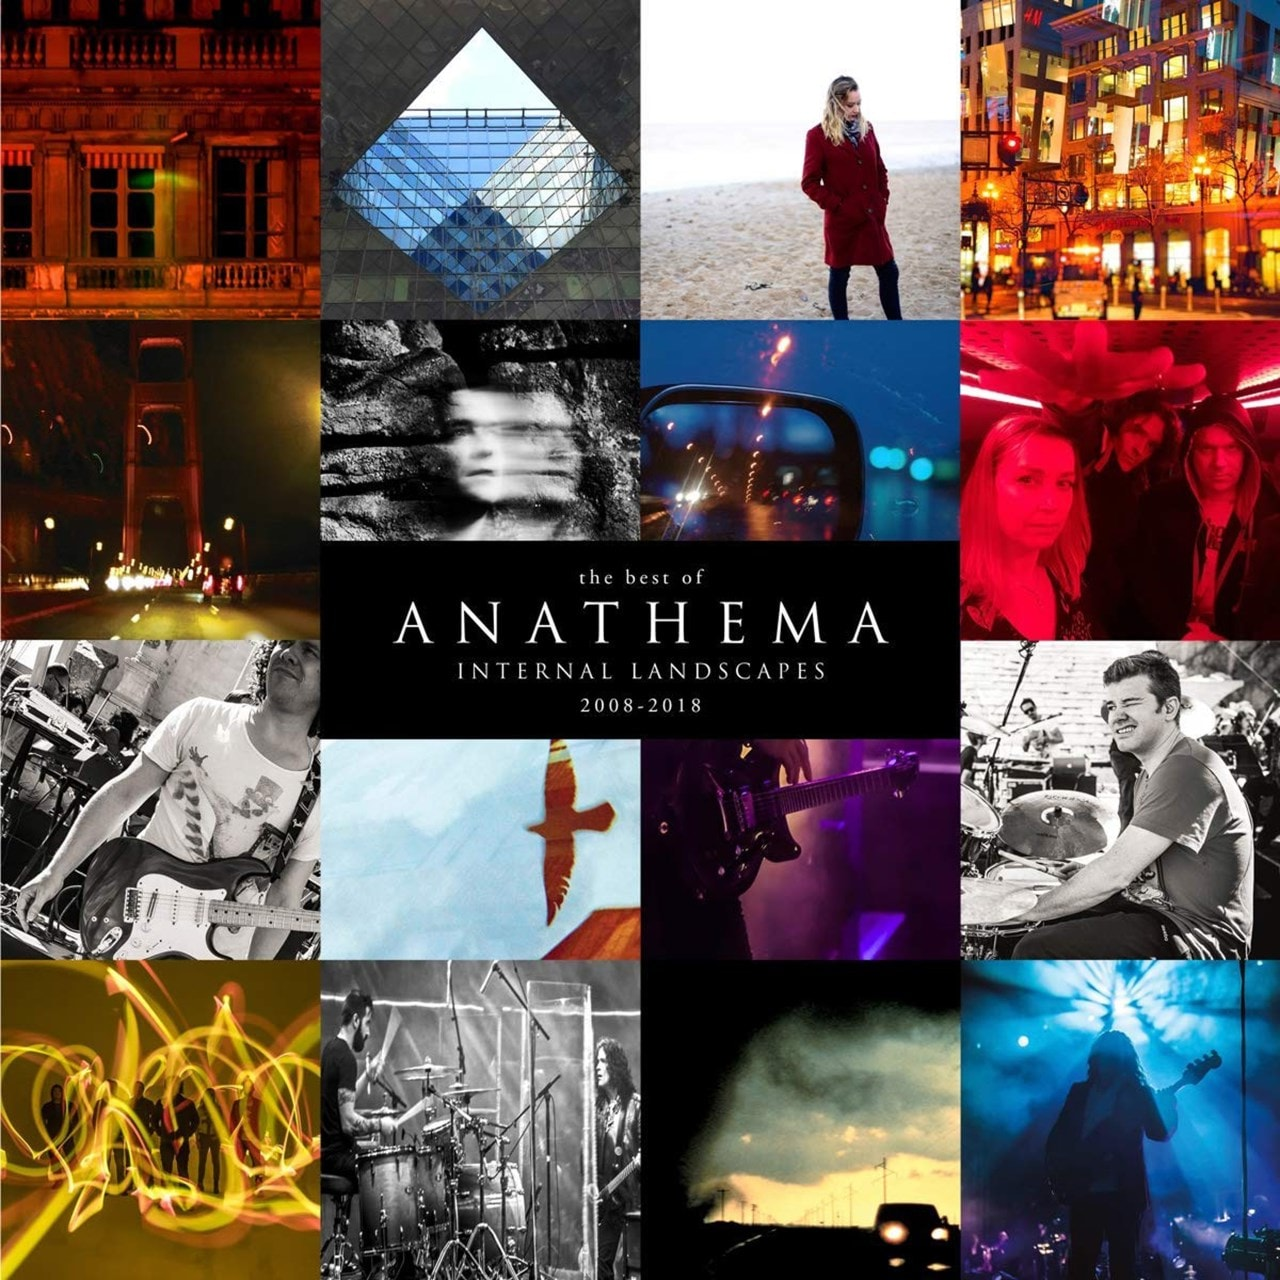 The Best of Anathema: Internal Landscapes 2008-2018 - 1